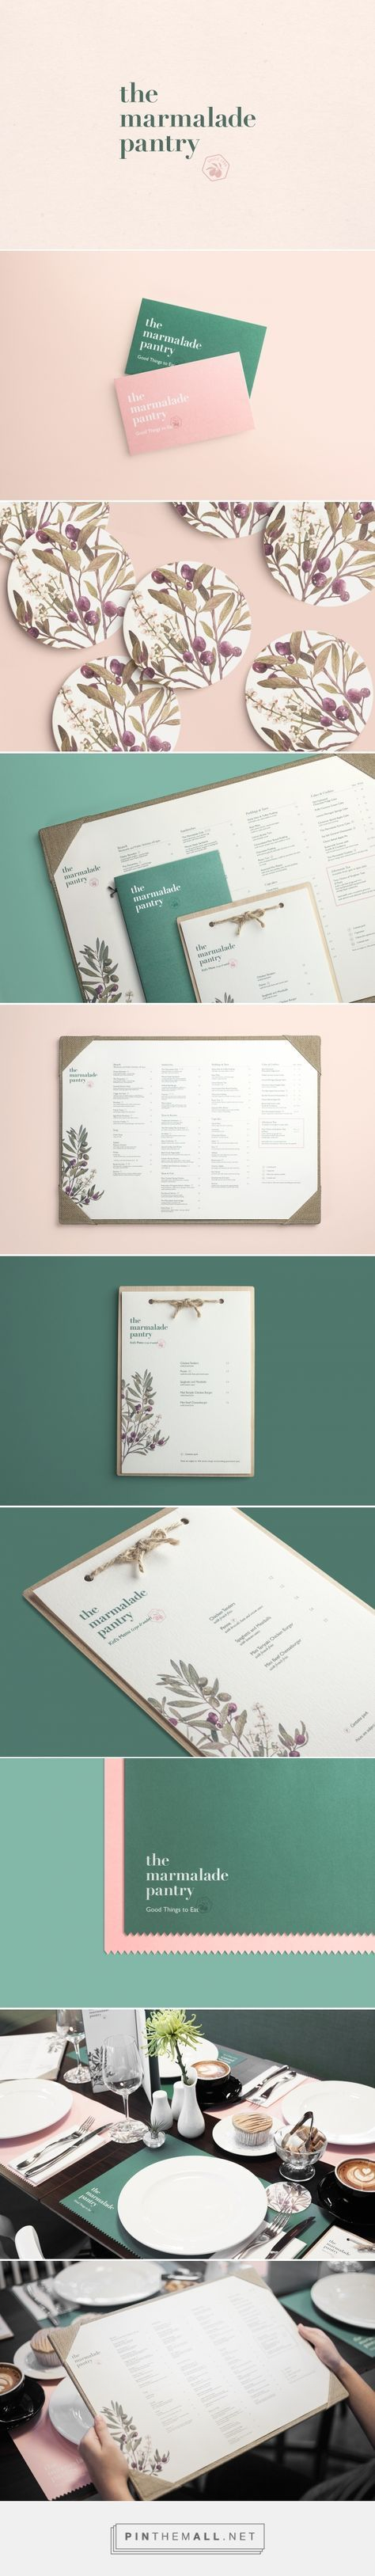 via Behance - The Marmalade Pantry